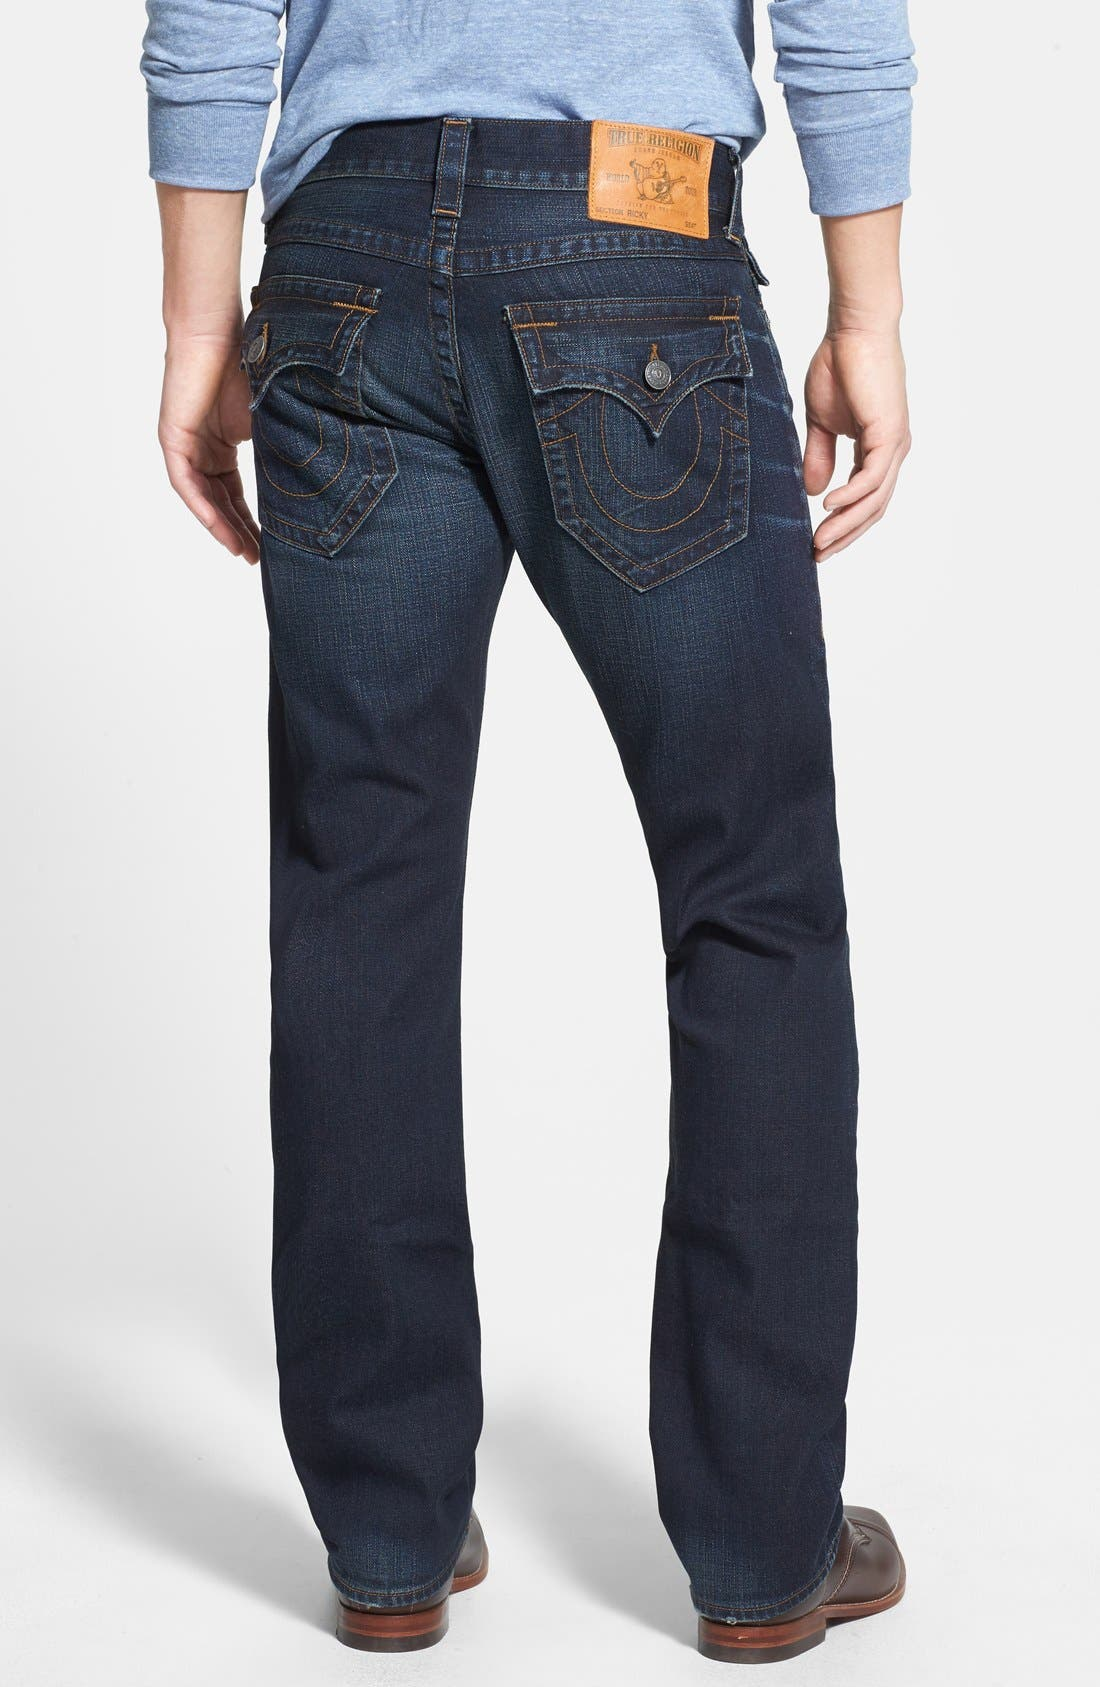 Main Image - True Religion Brand Jeans 'Ricky' Relaxed Fit Jeans (Base Notes Blue)